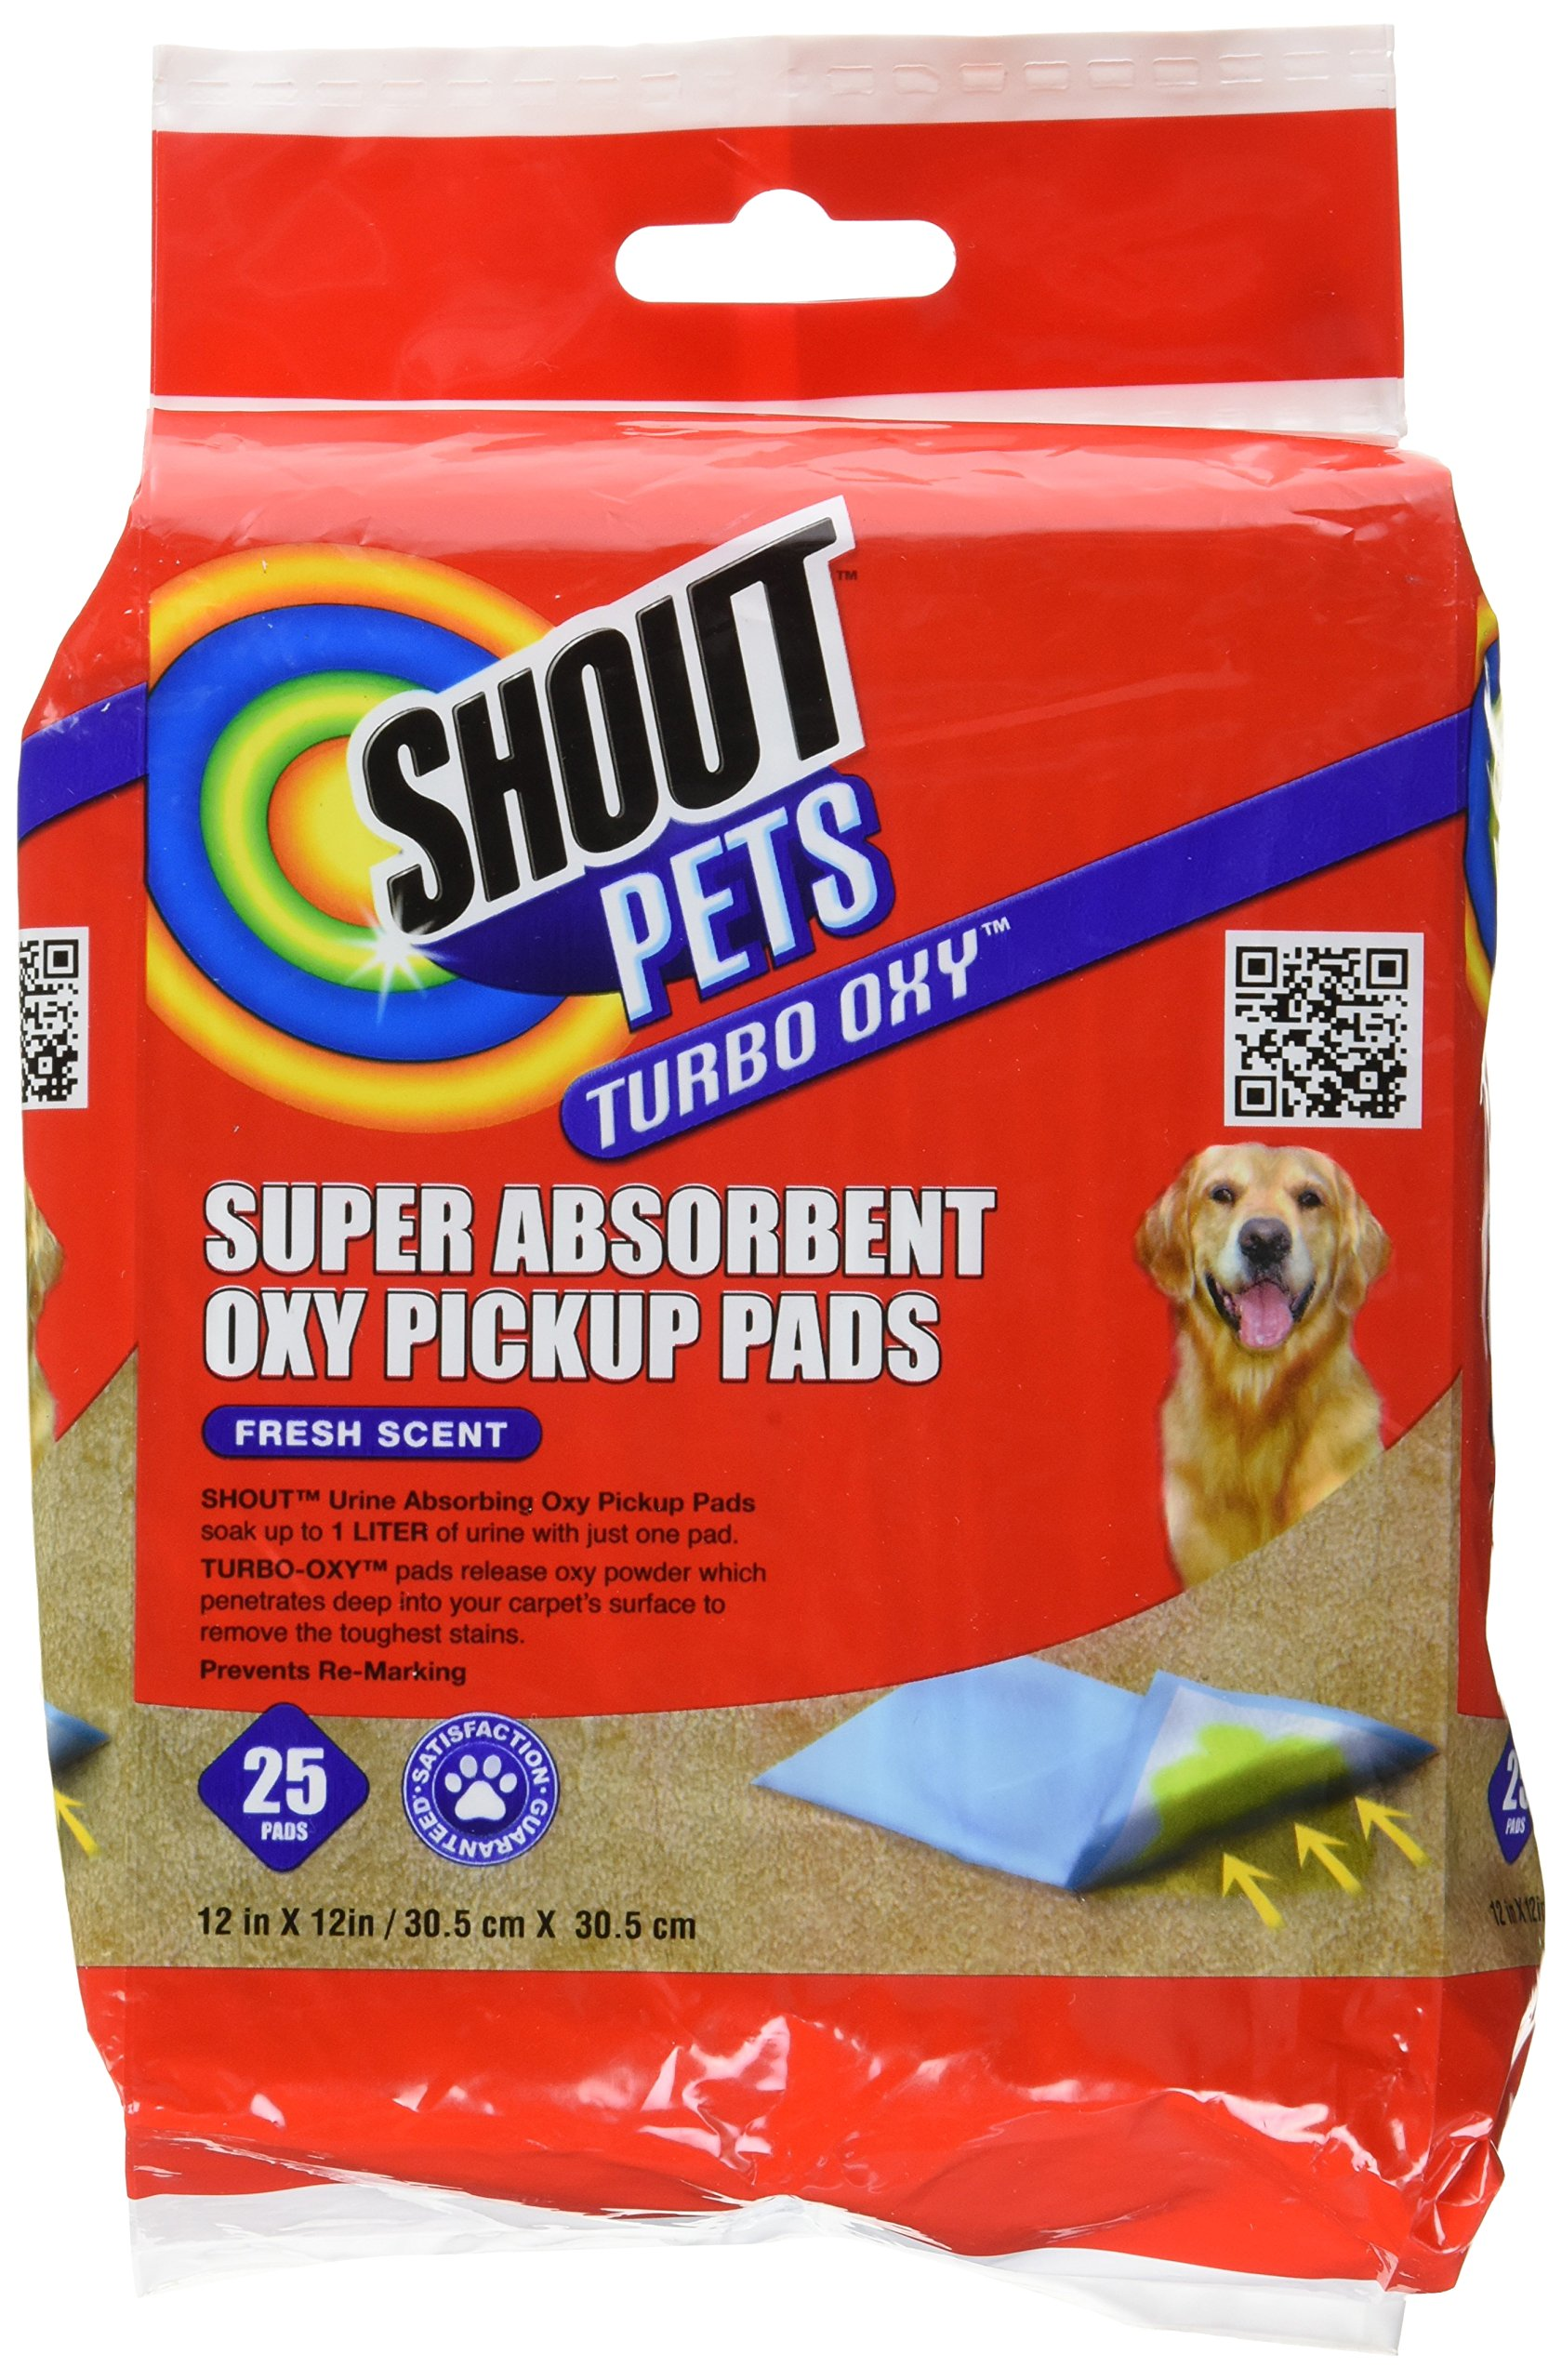 Shout for Pets Turbo Oxy Super Absorbent Oxy Pickup Pads | Best Pet Urine Pick Up Pads For Absorbing Pee Stains, 25 pads, Fresh Scent